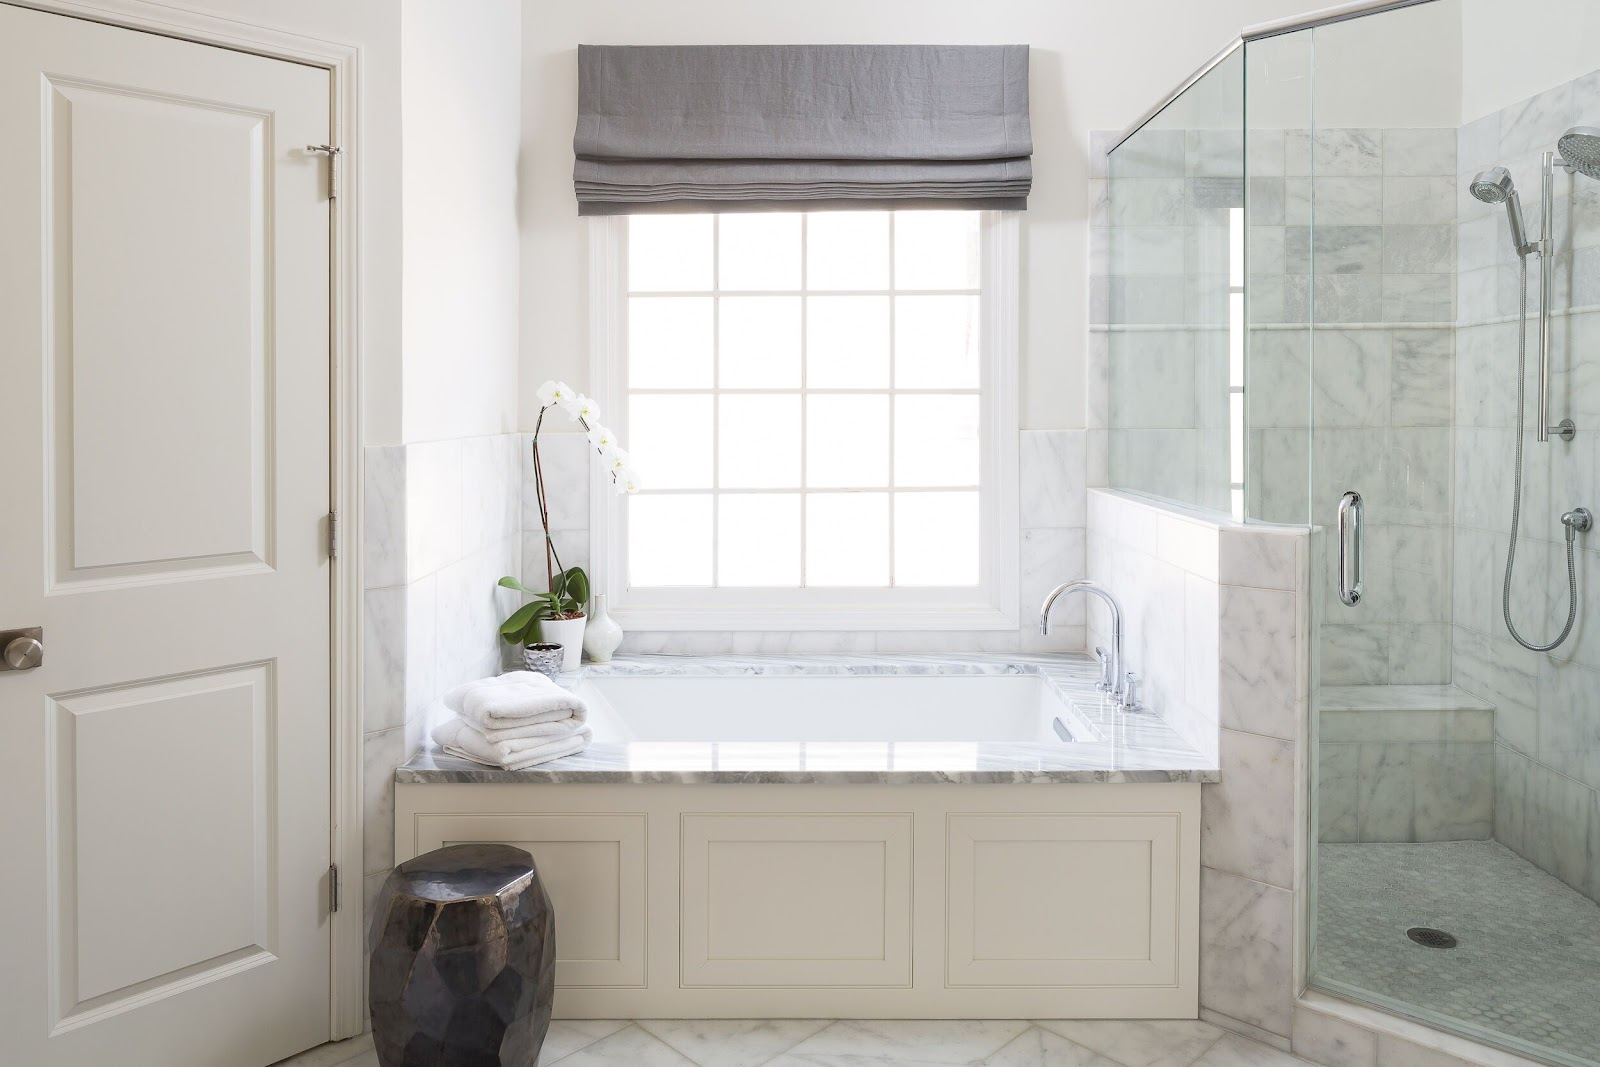 tara-fust-interrior-design-atlanta-30319-project-reveal-after-master-bathroom